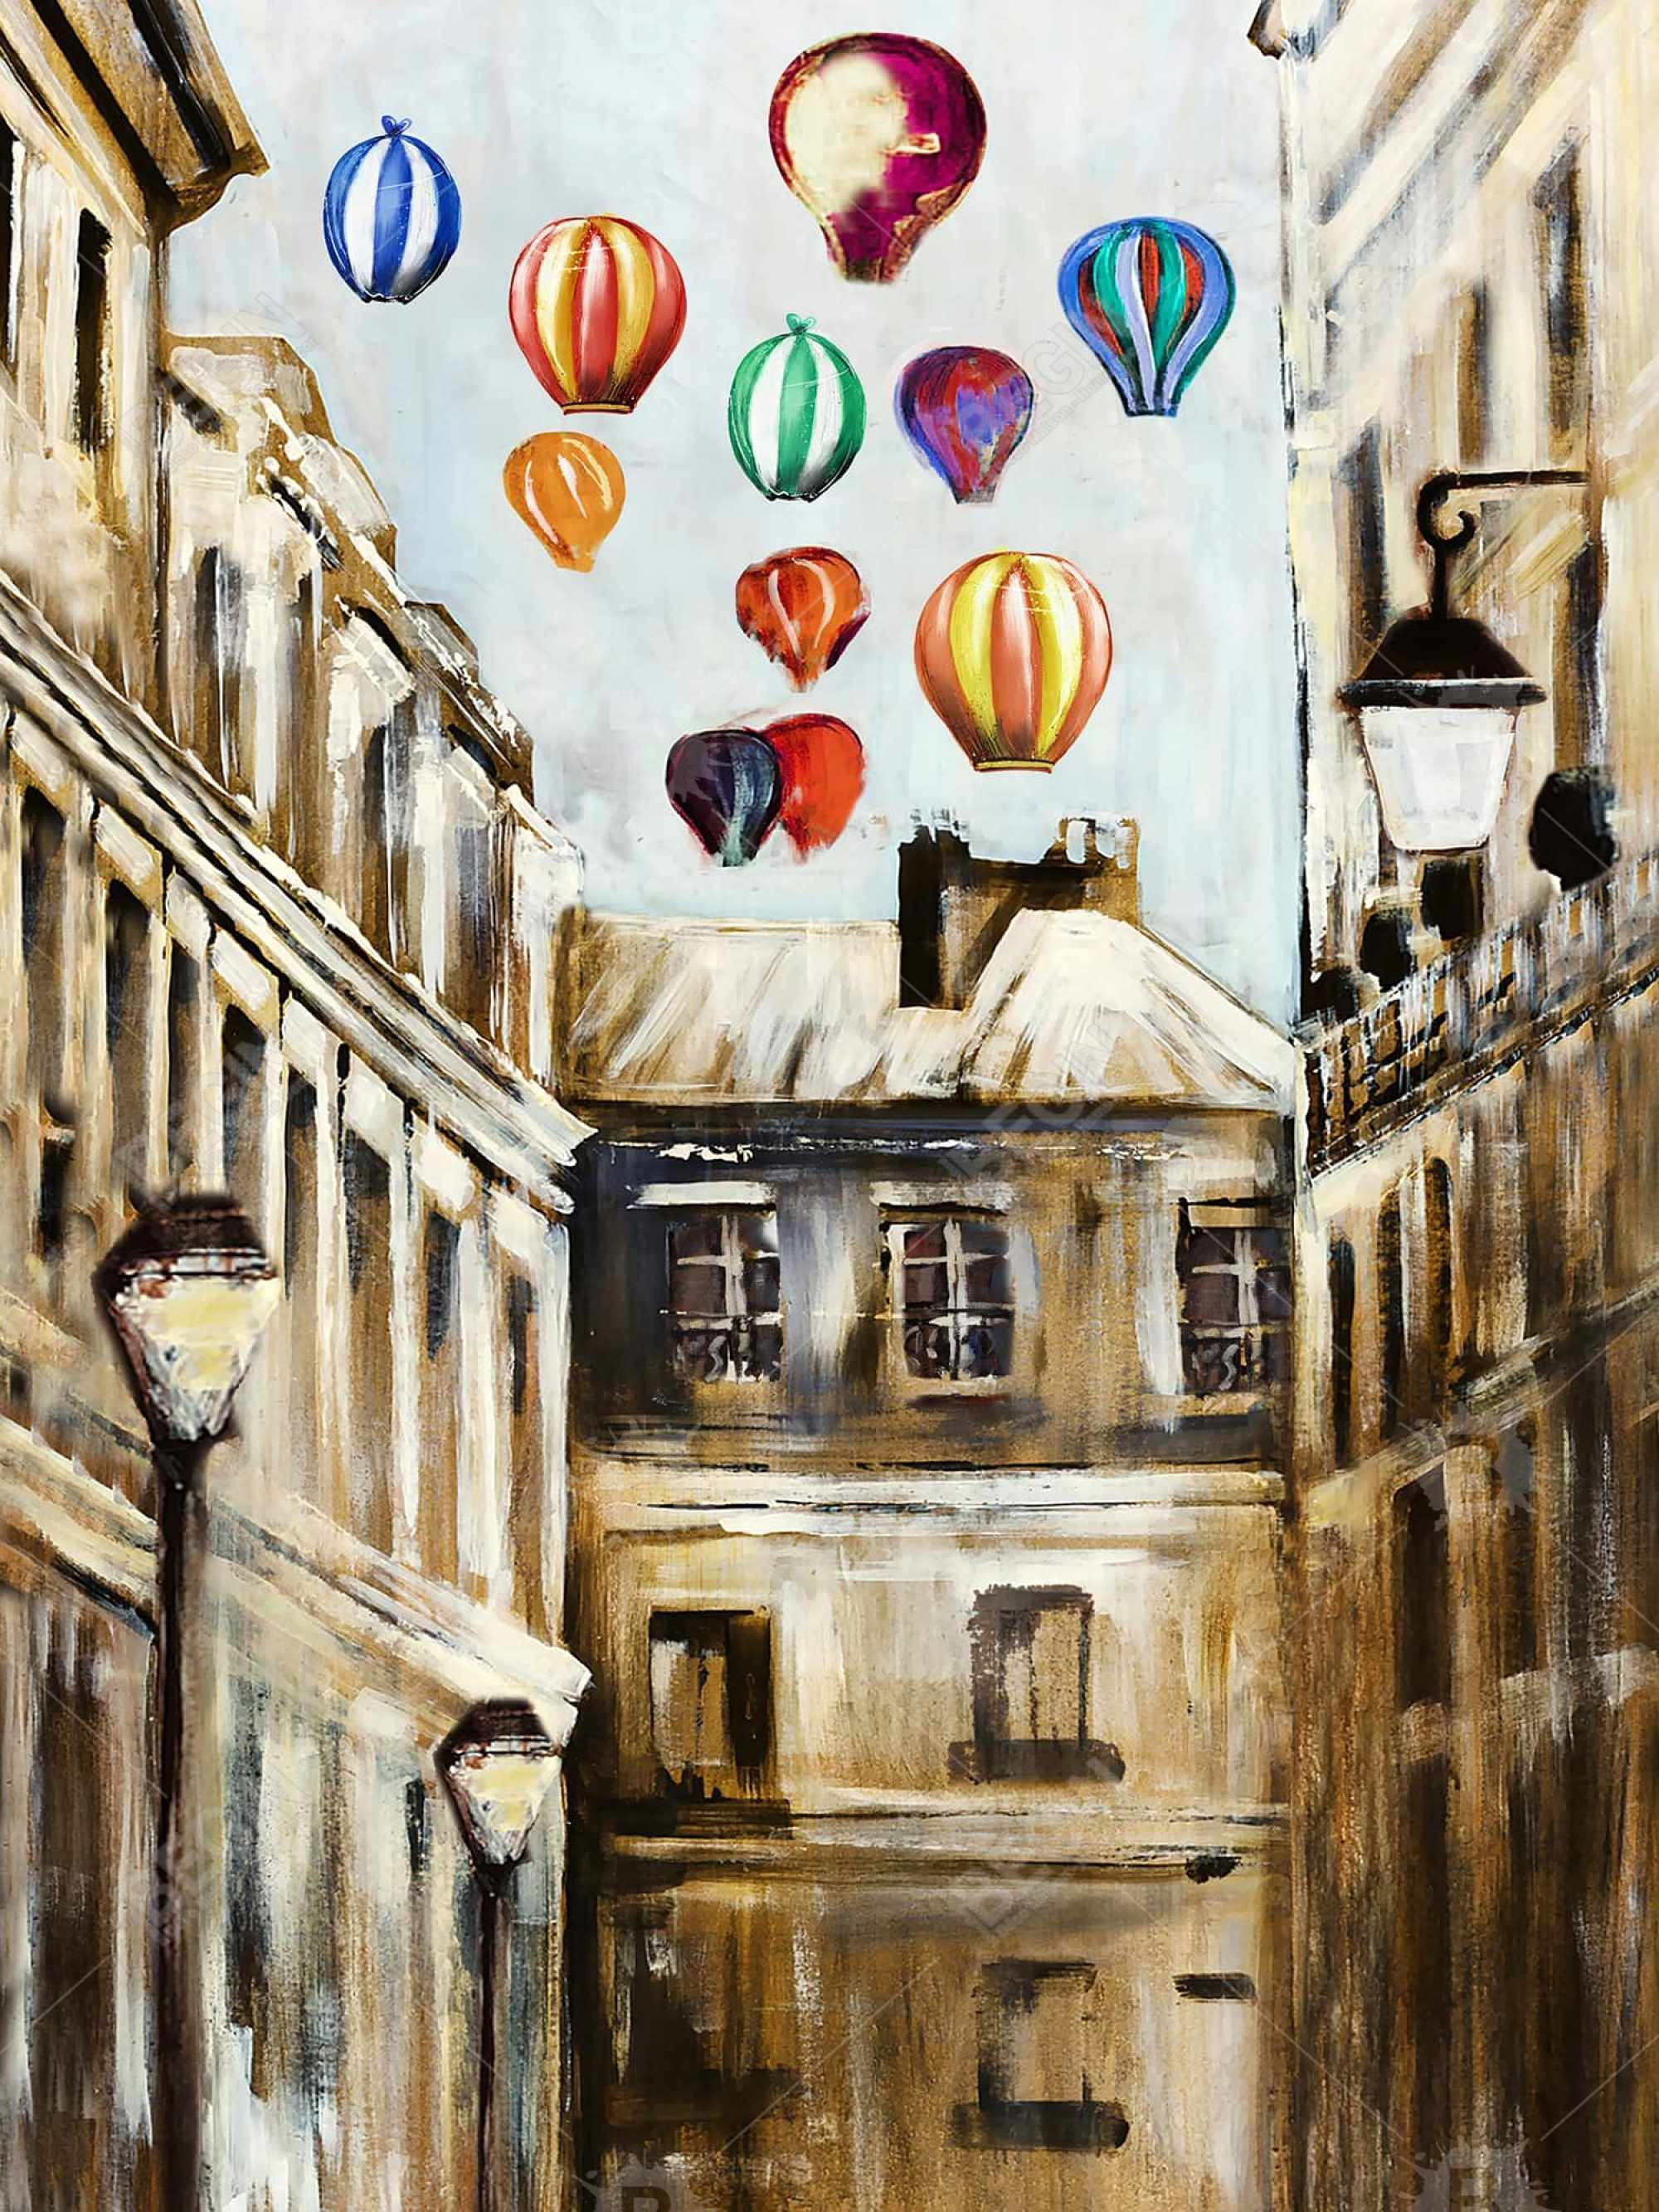 Gloomy street with colorful hot-air balloons